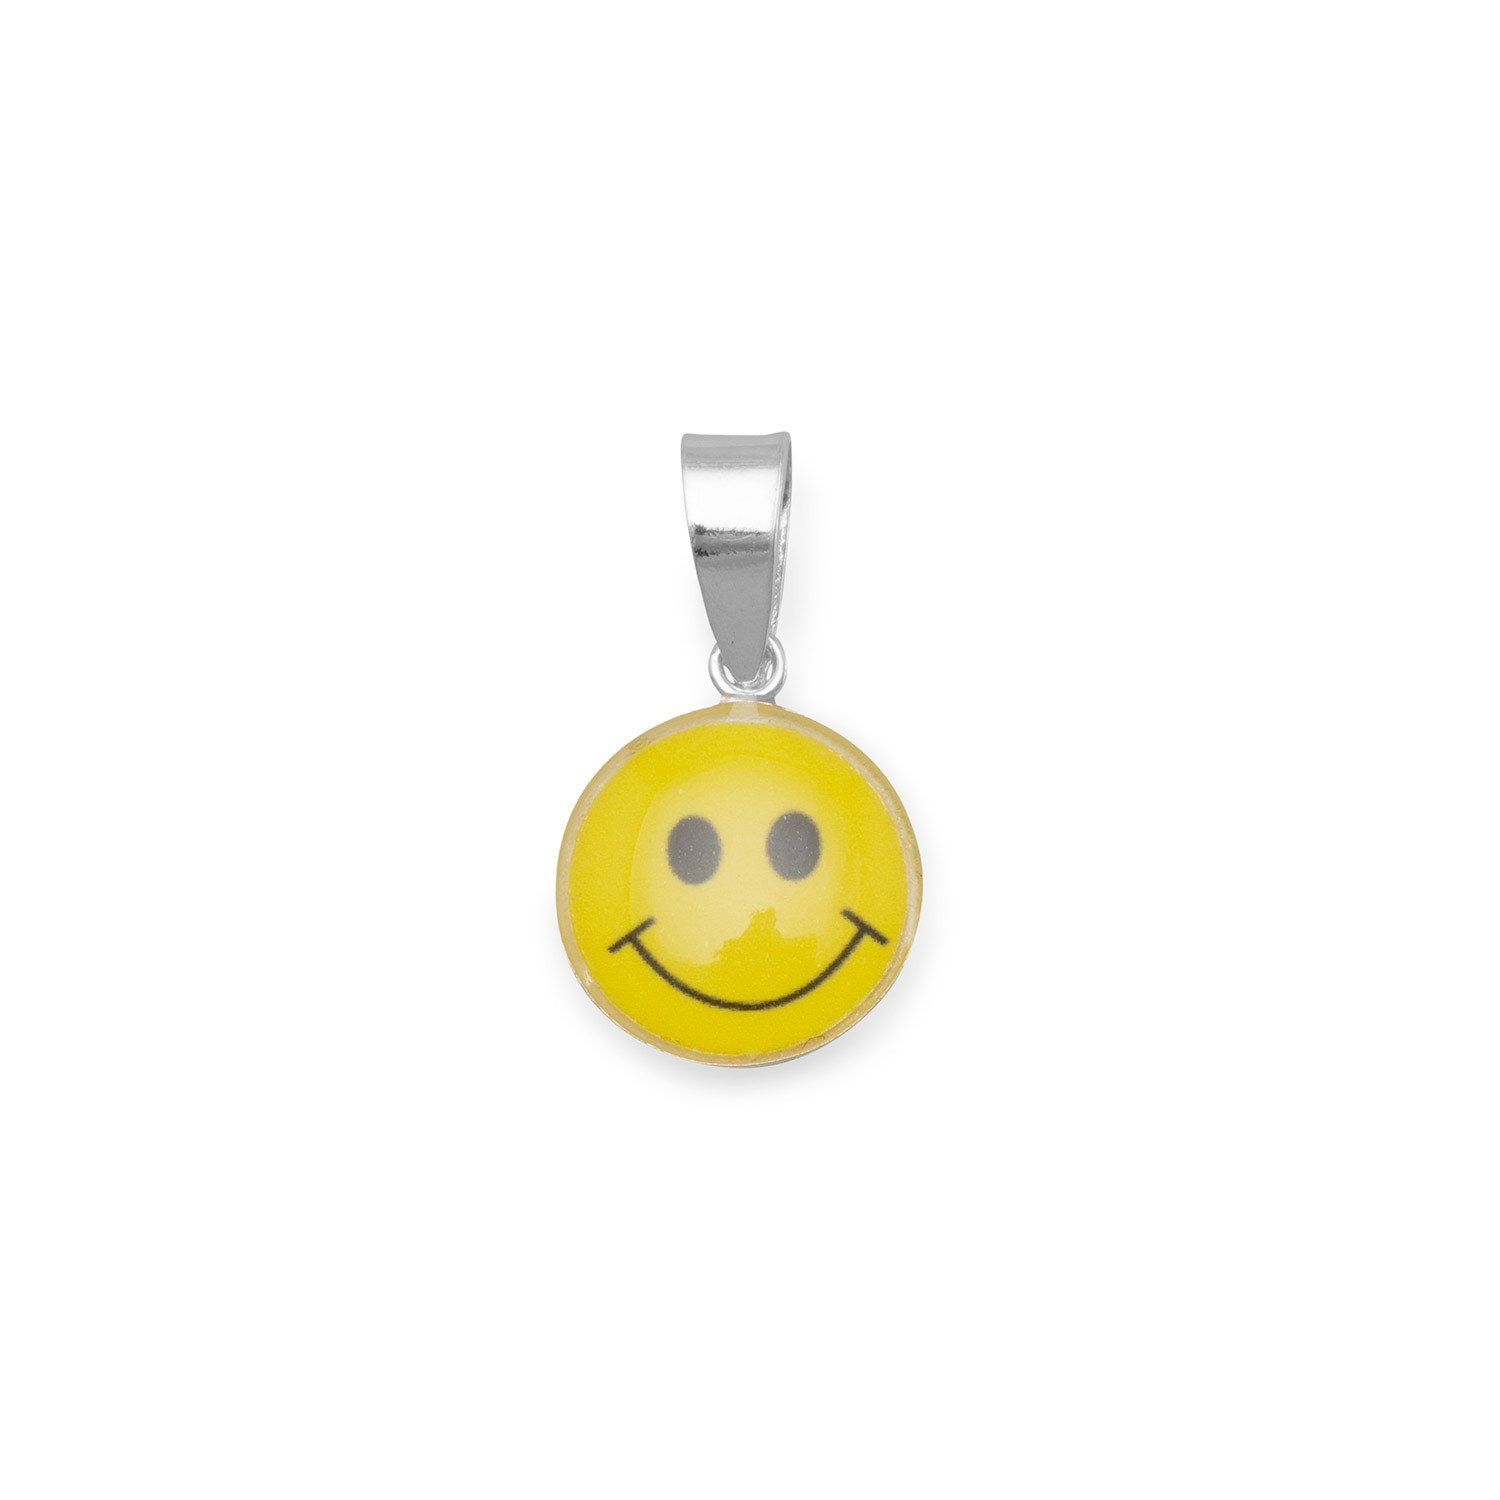 Smiley face pendant products pinterest products smiley face pendant aloadofball Image collections